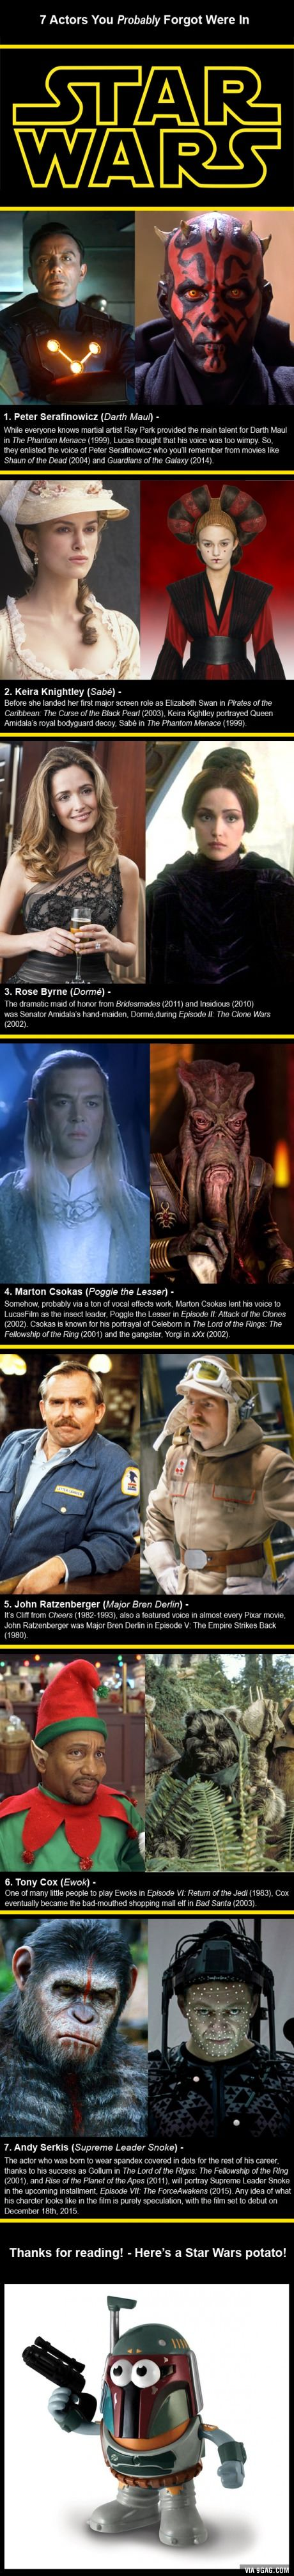 7 Actors you probably forgot were in Star Wars